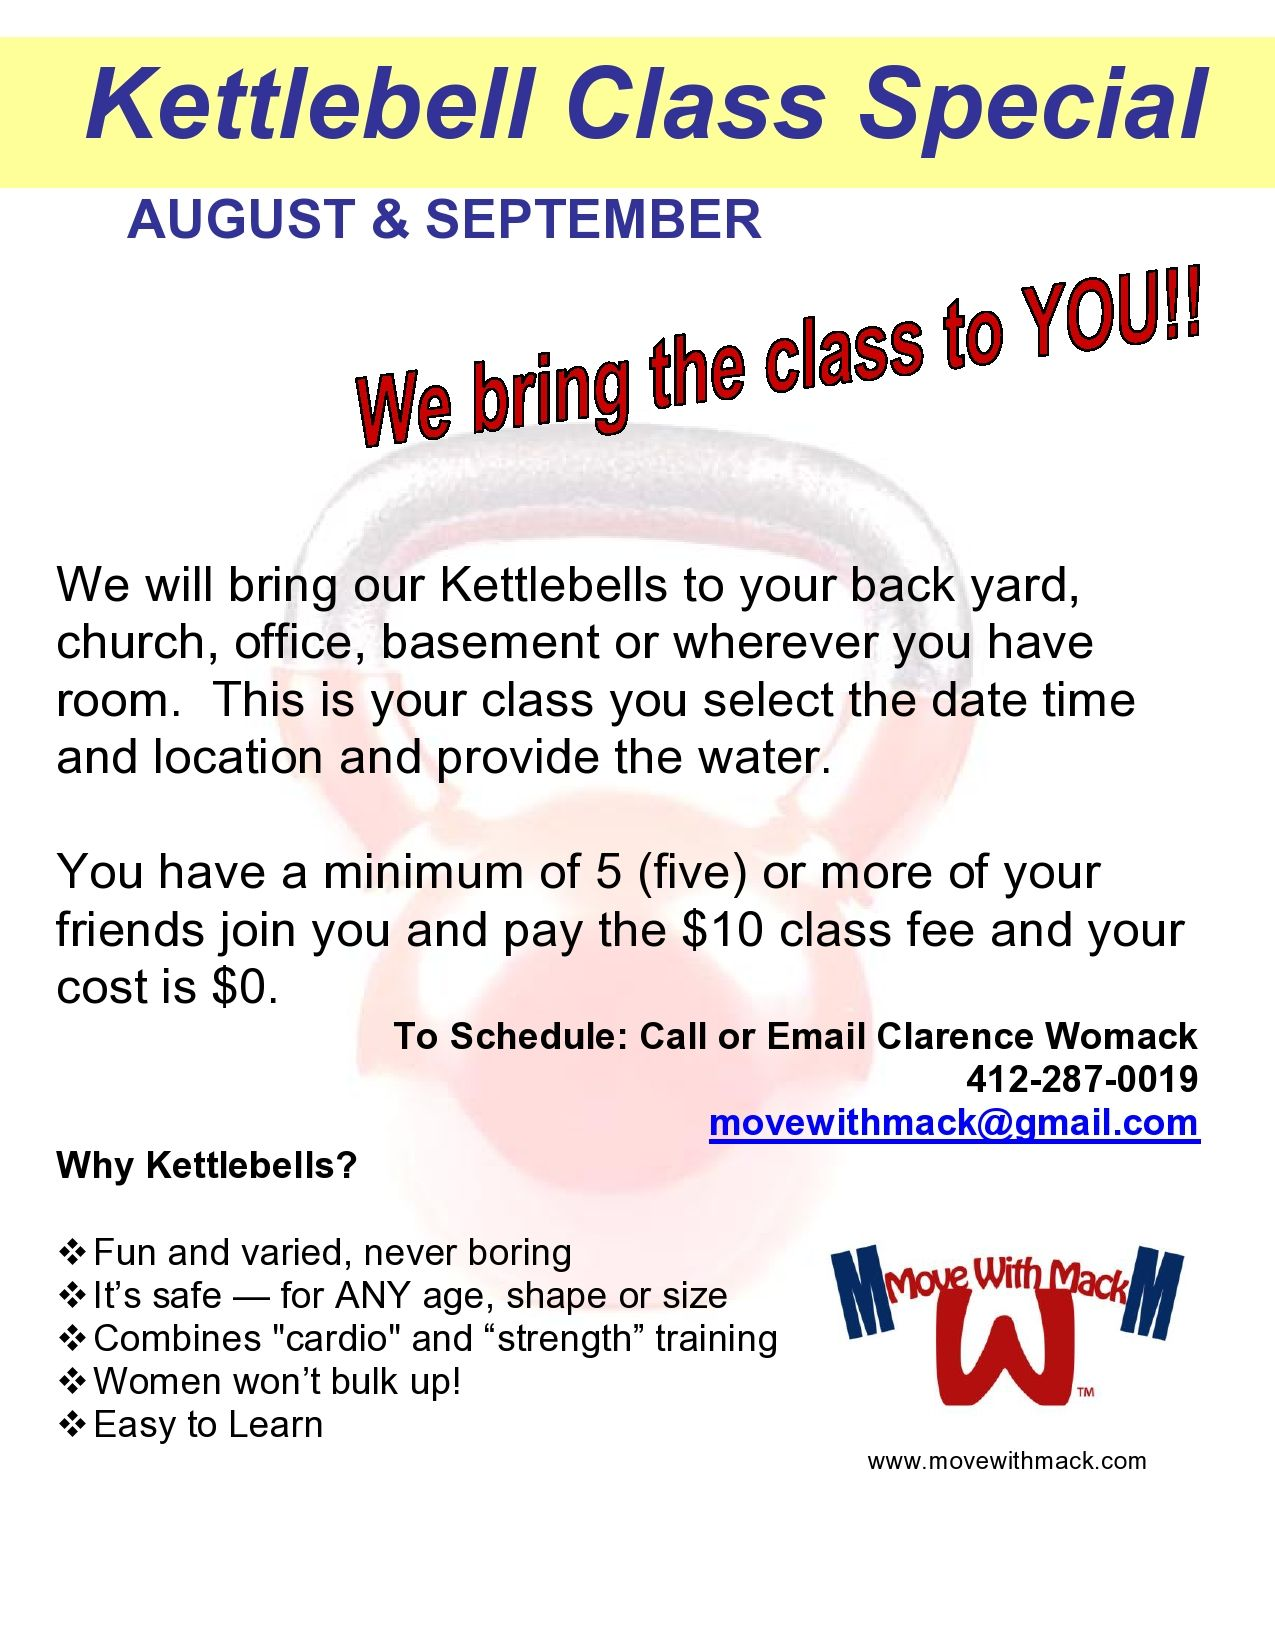 Move With Mack Aug & Sept Kettlebell Class Special Offer